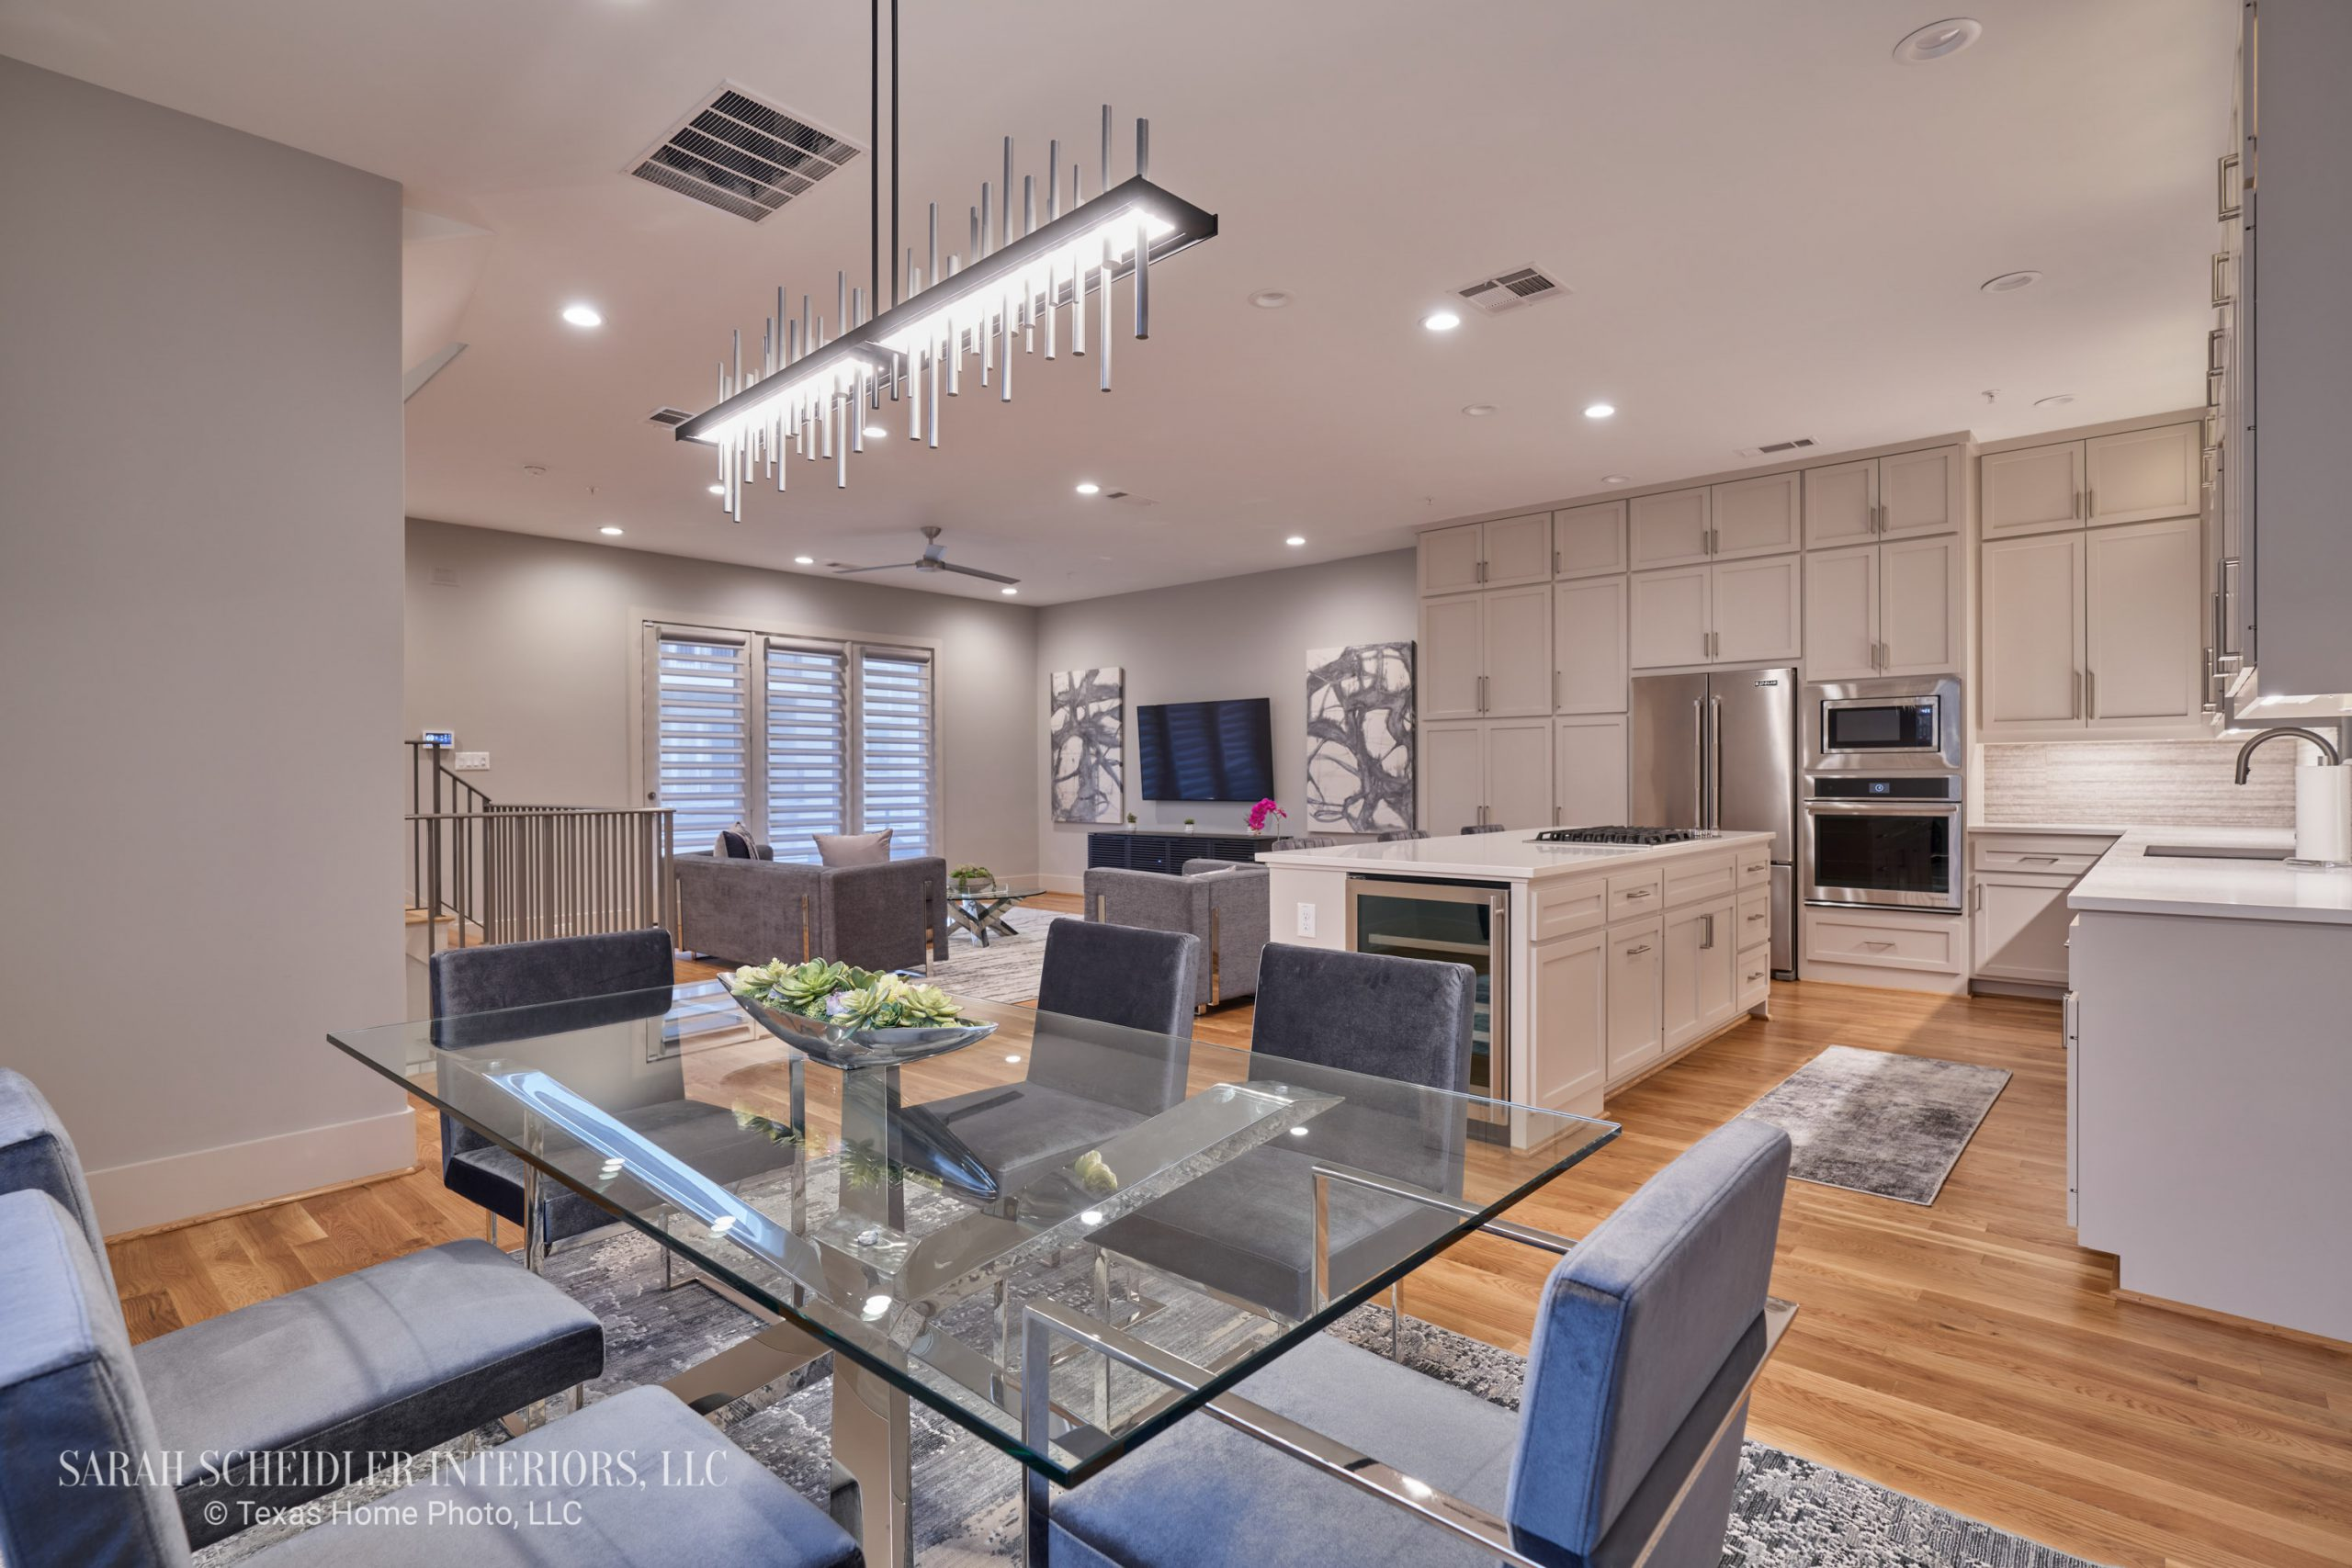 Modern Open-Concept Dining Room, Kitchen, and Living Room Designs